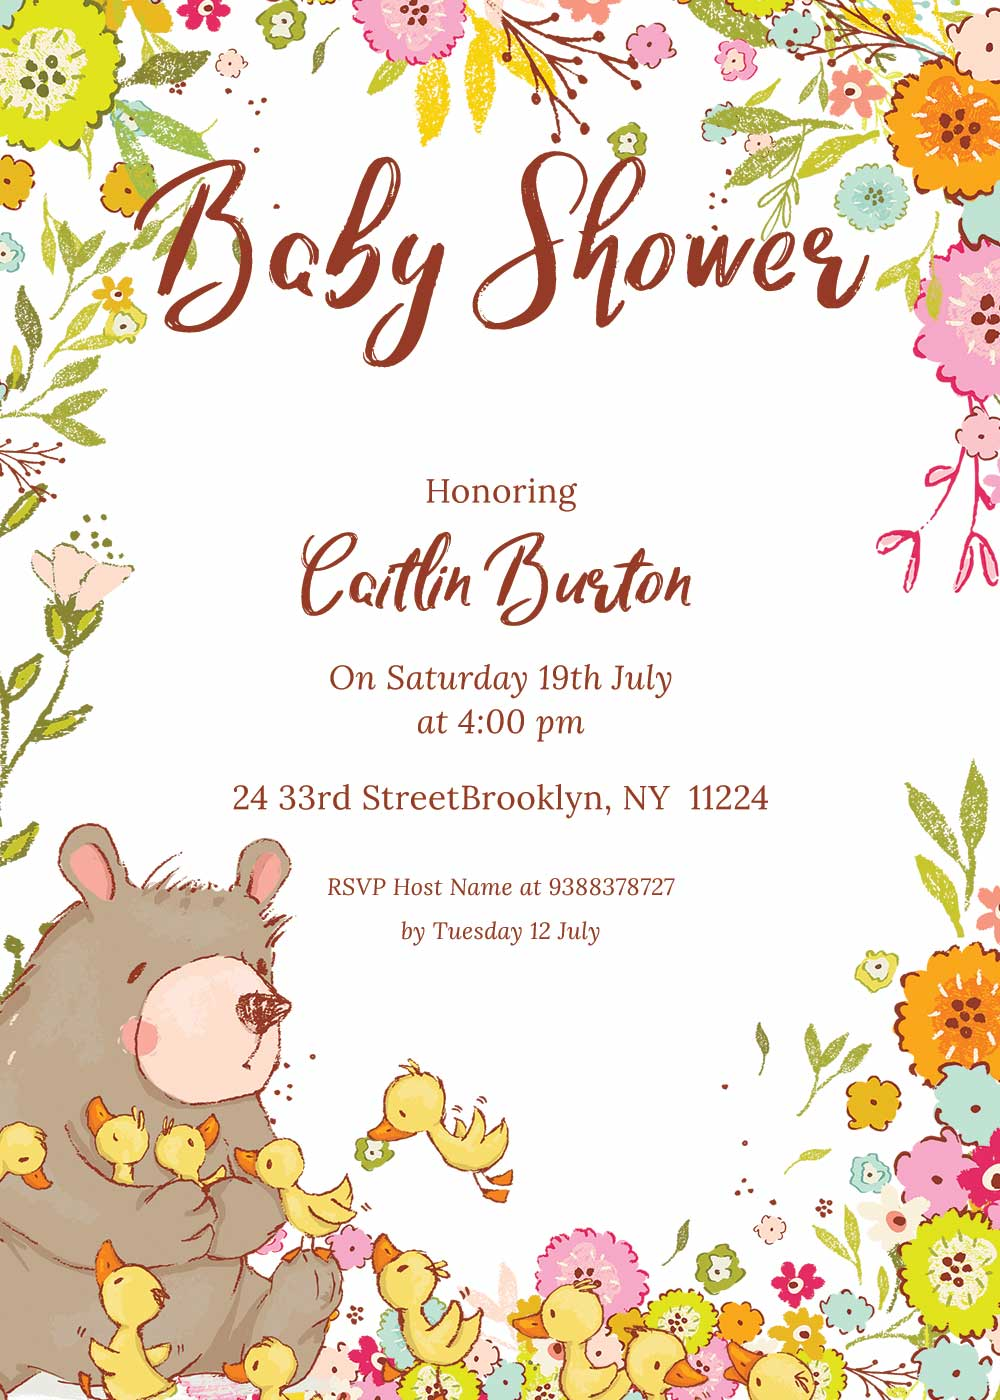 Baby shower invitations - Spring theme